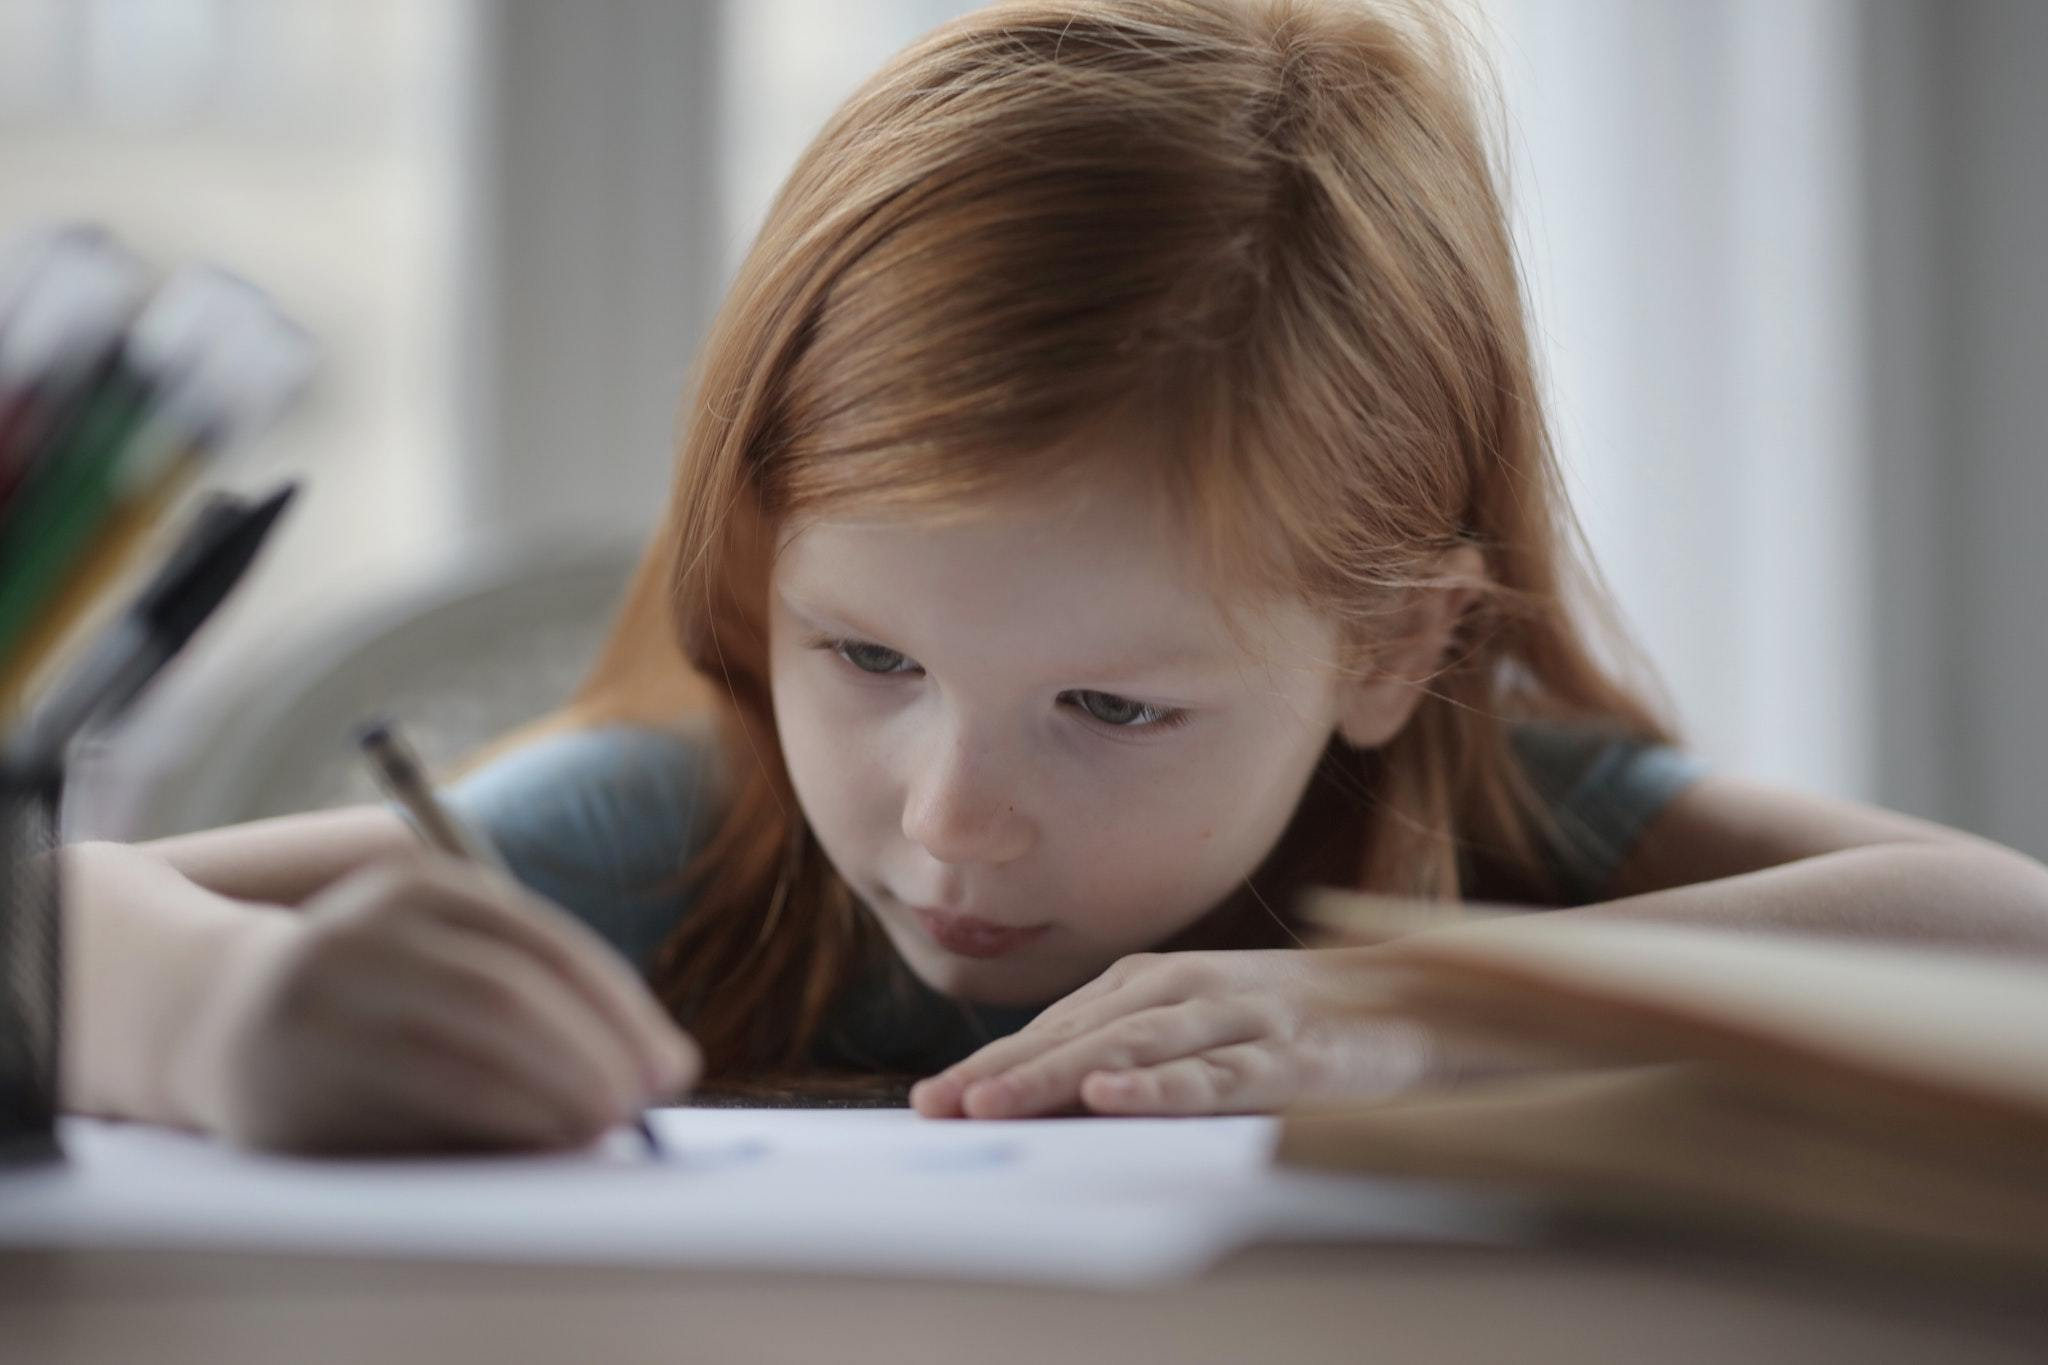 Weekly Creative Writing Workshop for Early Writers (K-1) - Saturday 2:15-3:15 PM - Write On! Creative Writing Center